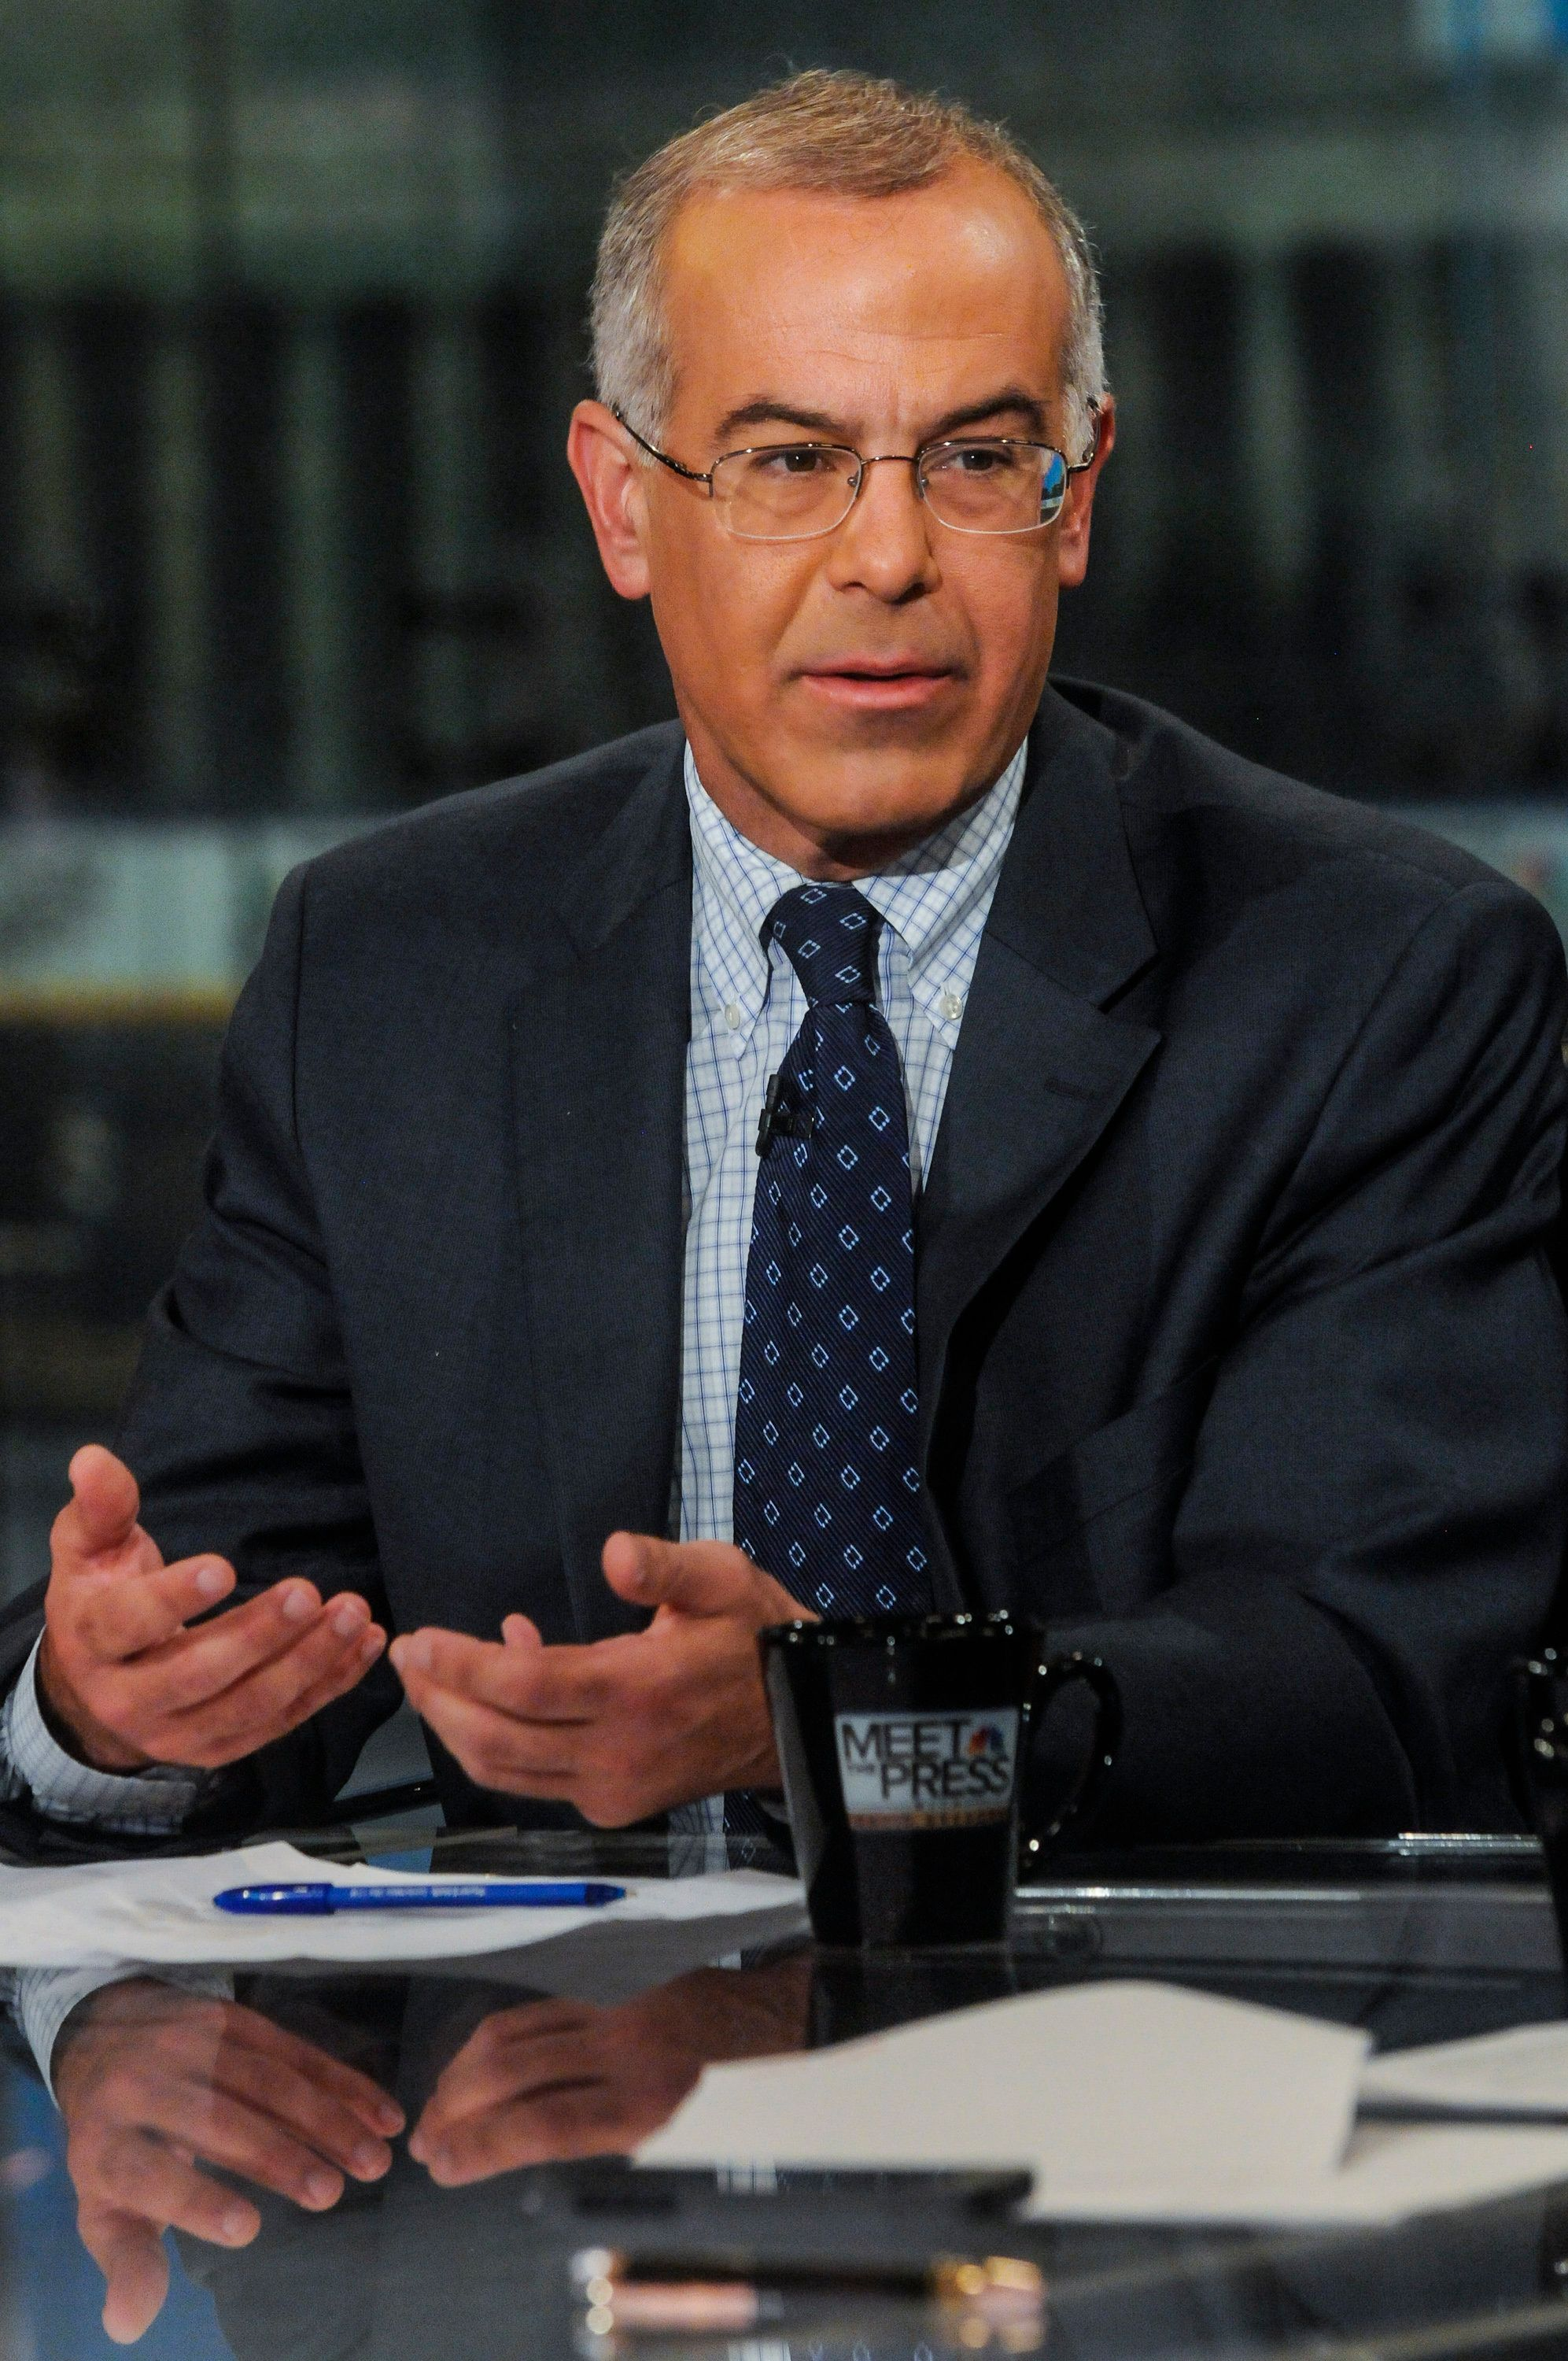 MEET THE PRESS -- Pictured: (l-r)   David Brooks, Columnist, The New York Times, appears on 'Meet the Press' in Washington, D.C., Sunday, August 11, 2013.  (Photo by: William B. Plowman/NBC/NBC NewsWire via Getty Images)